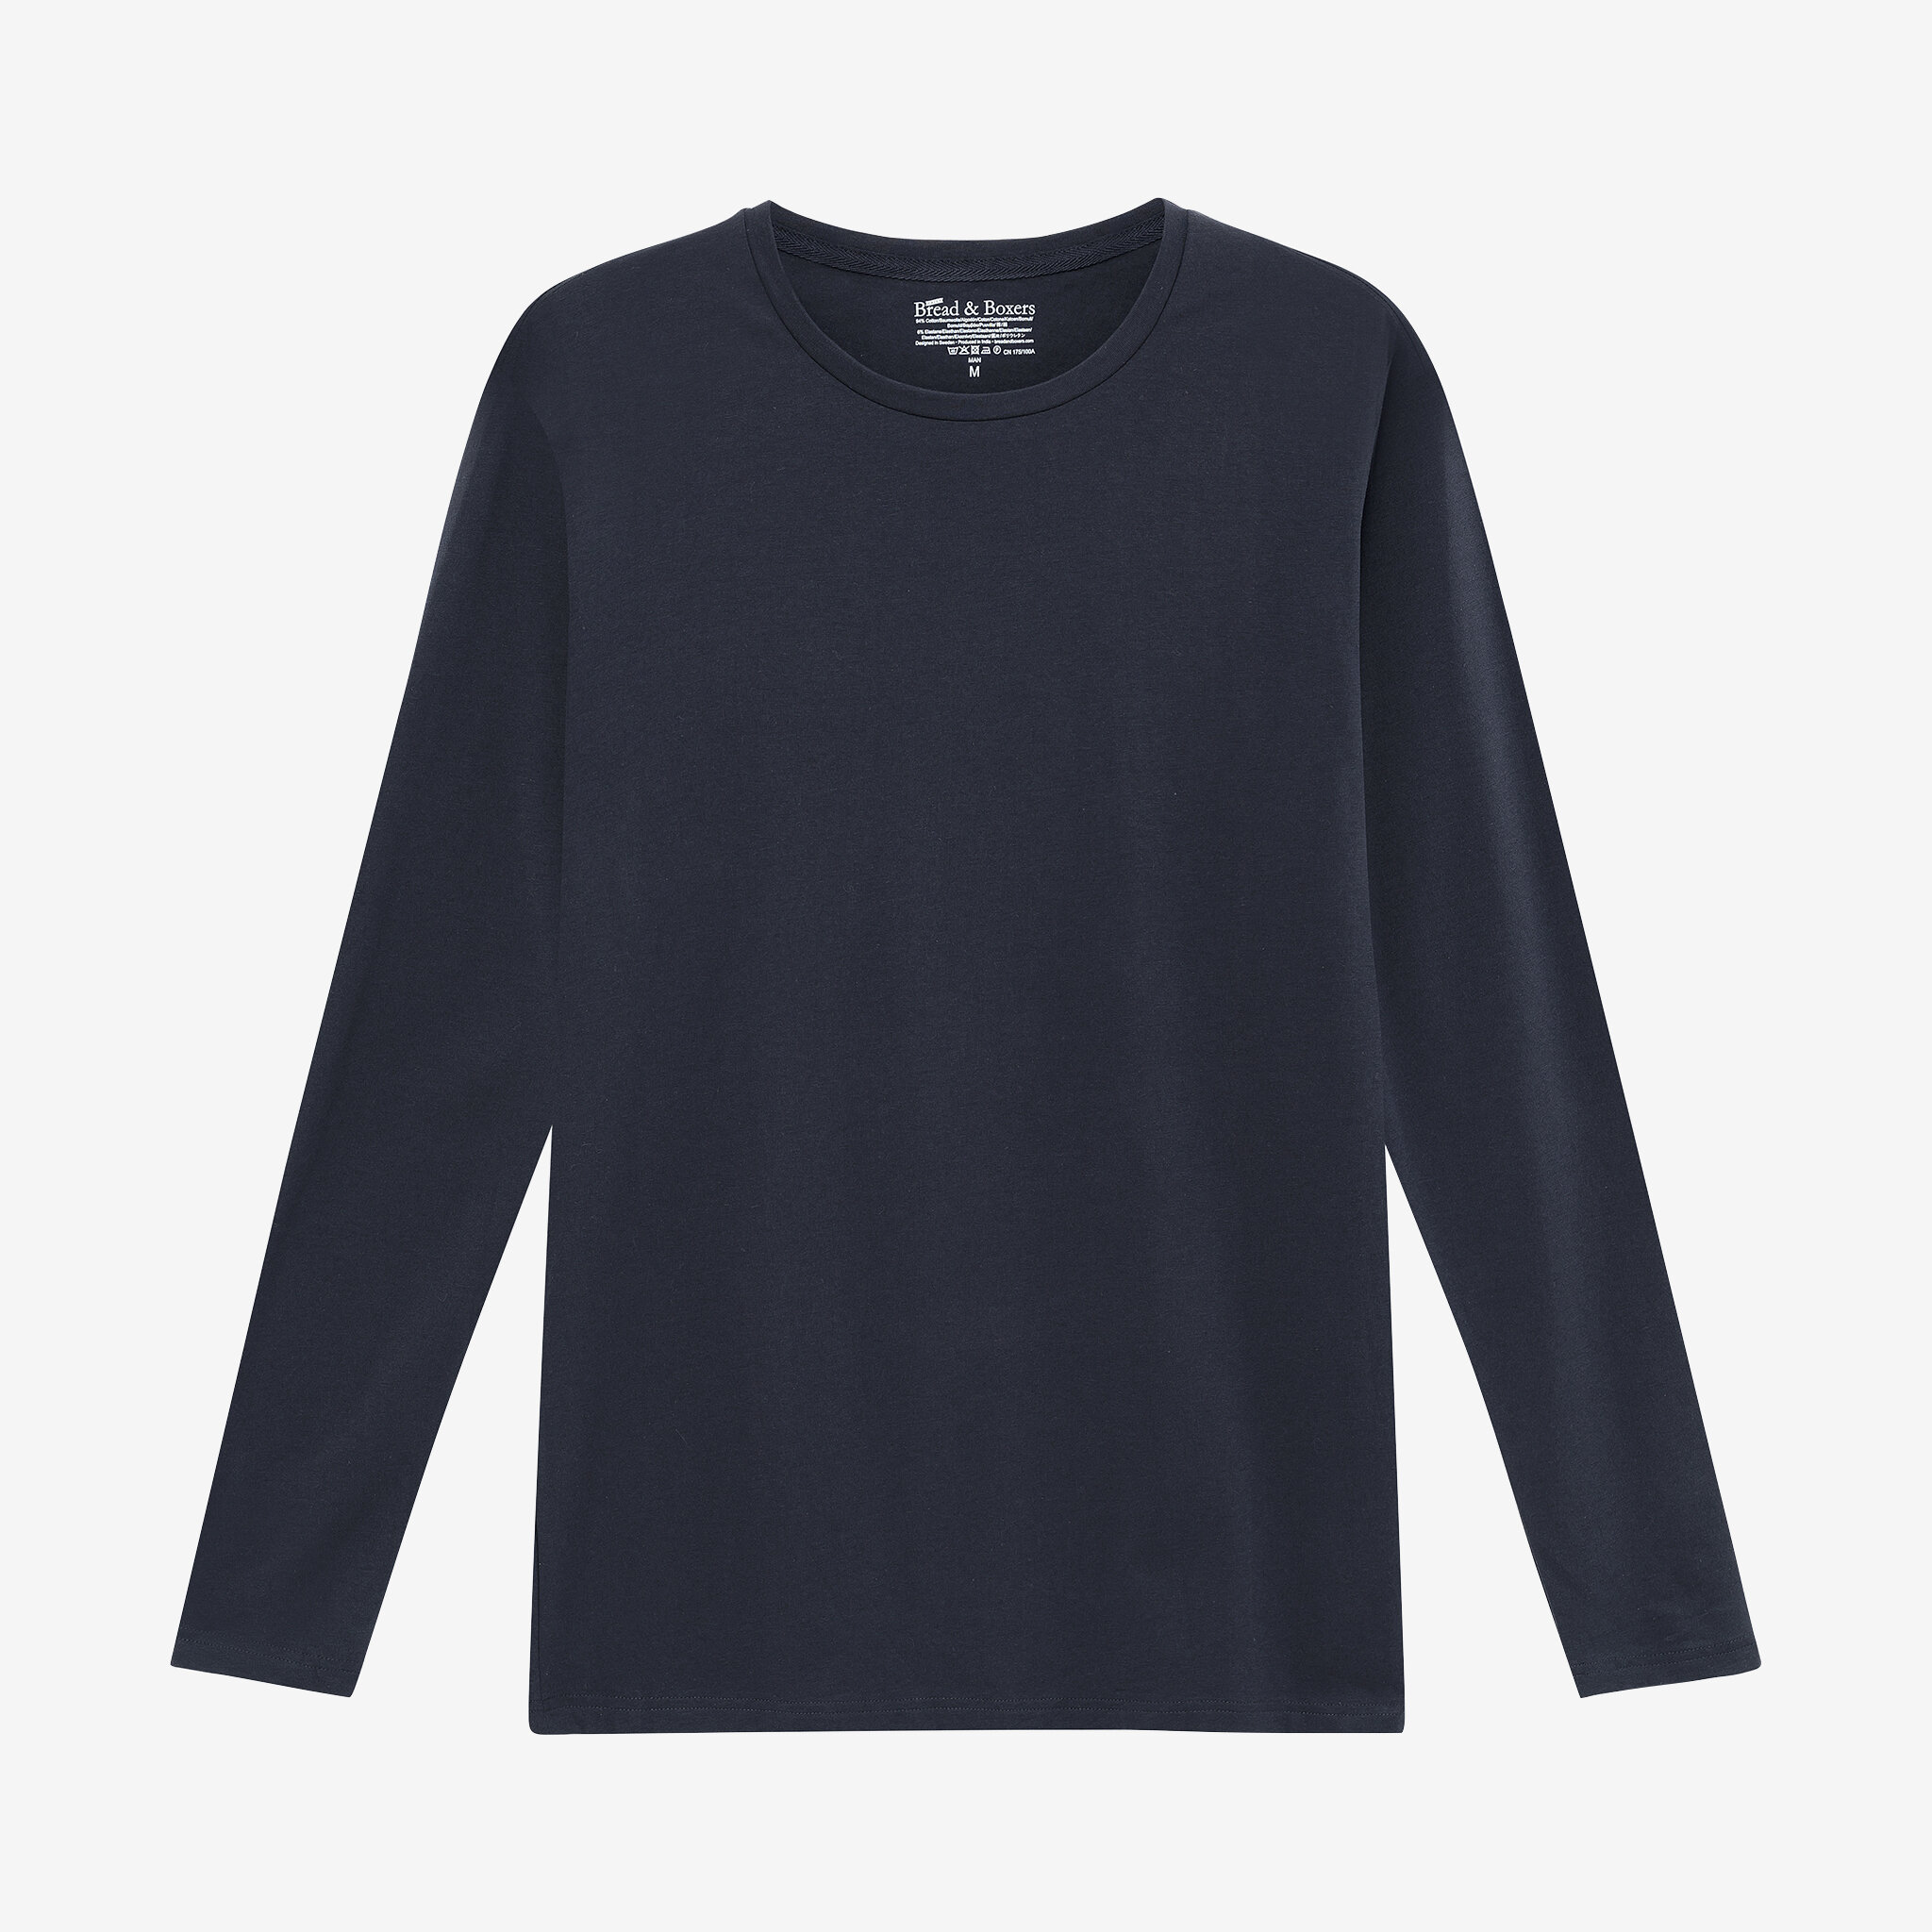 116204_Man_Long Sleeve_dark-navy